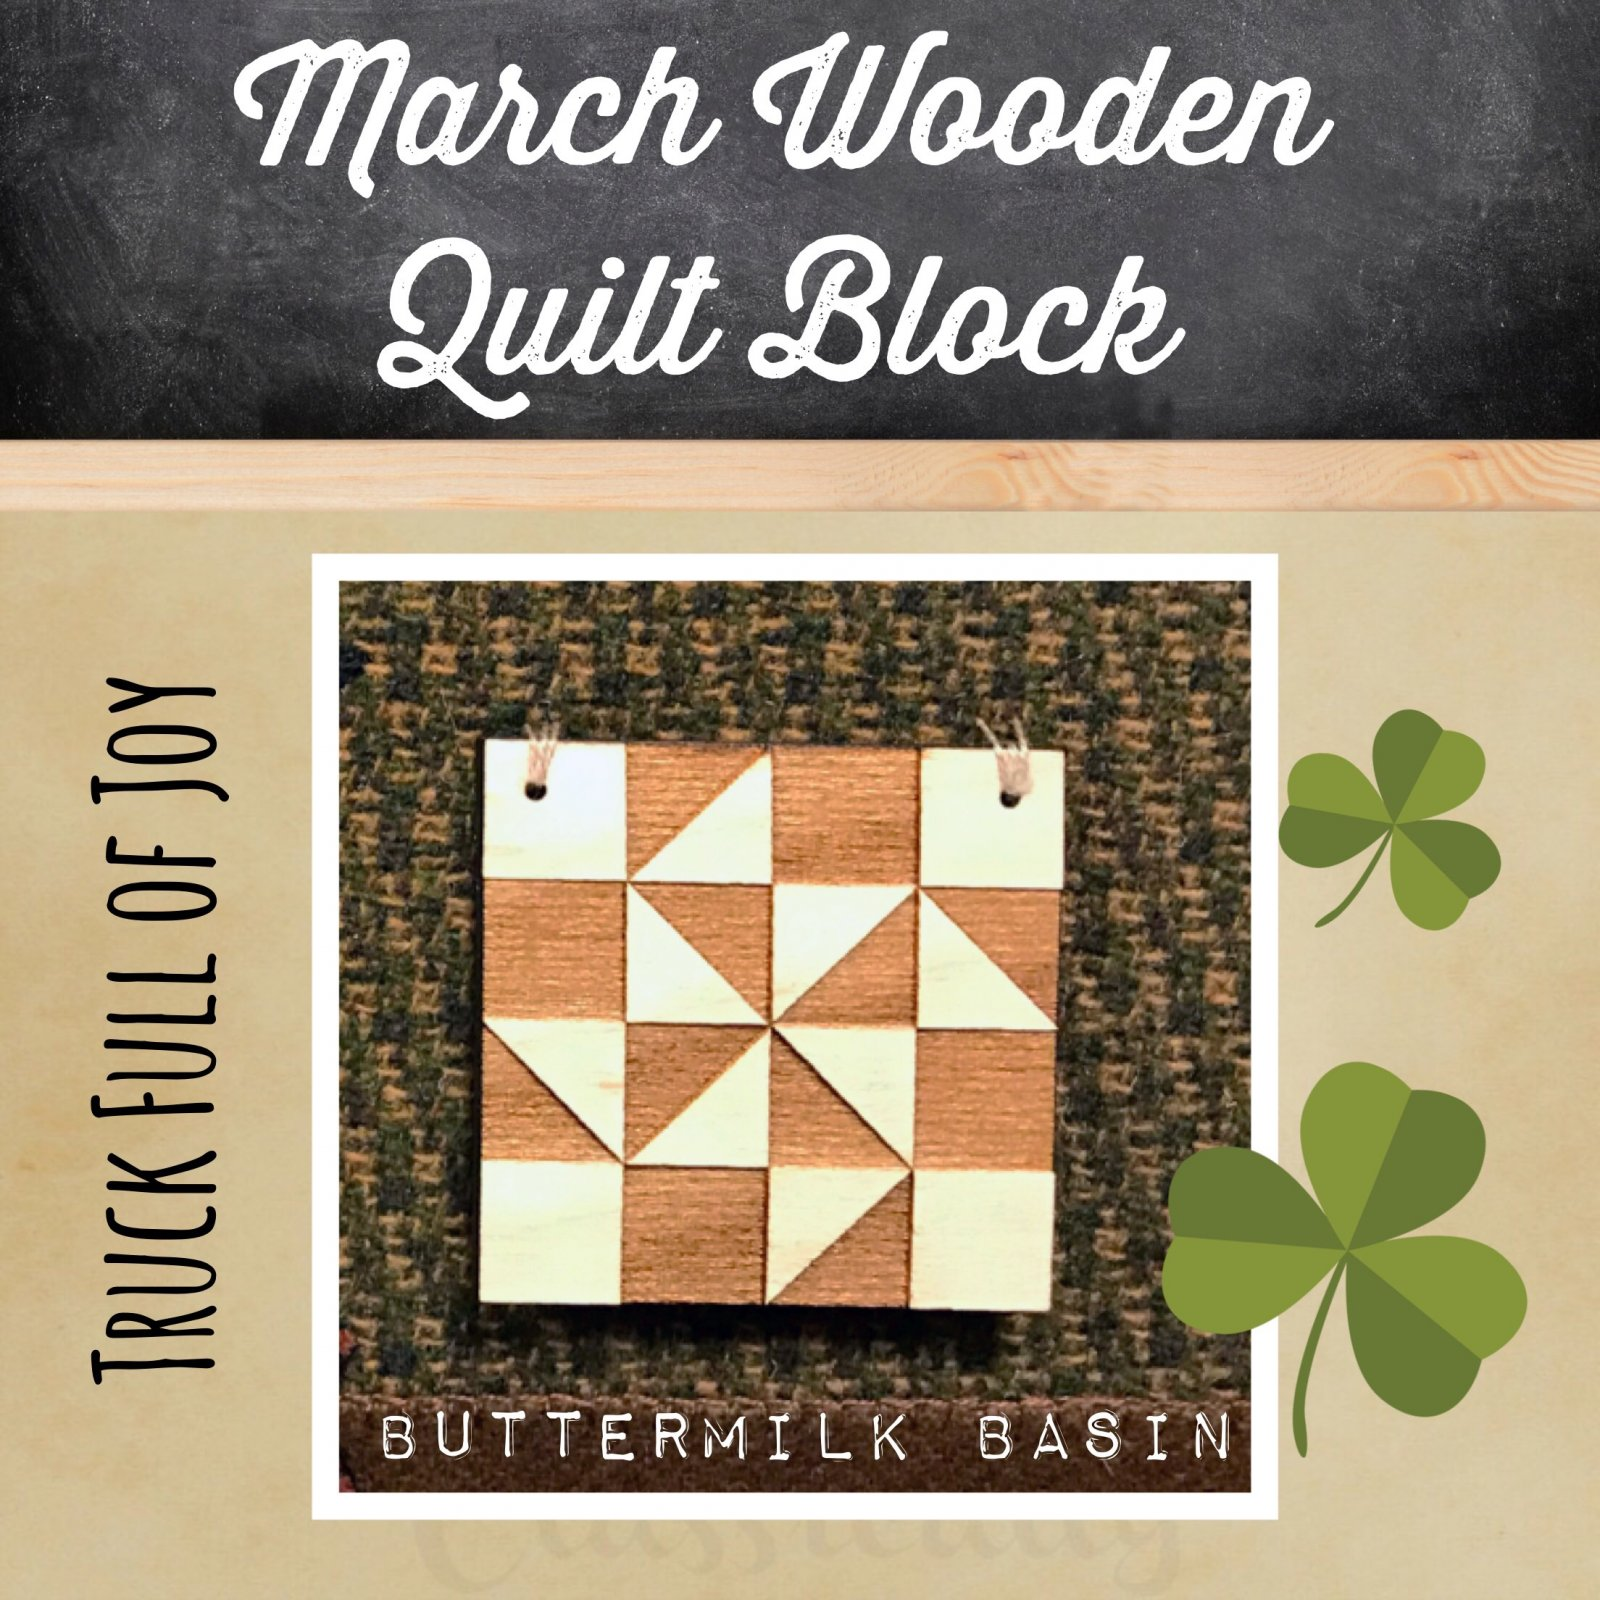 March Wooden Quilt Block